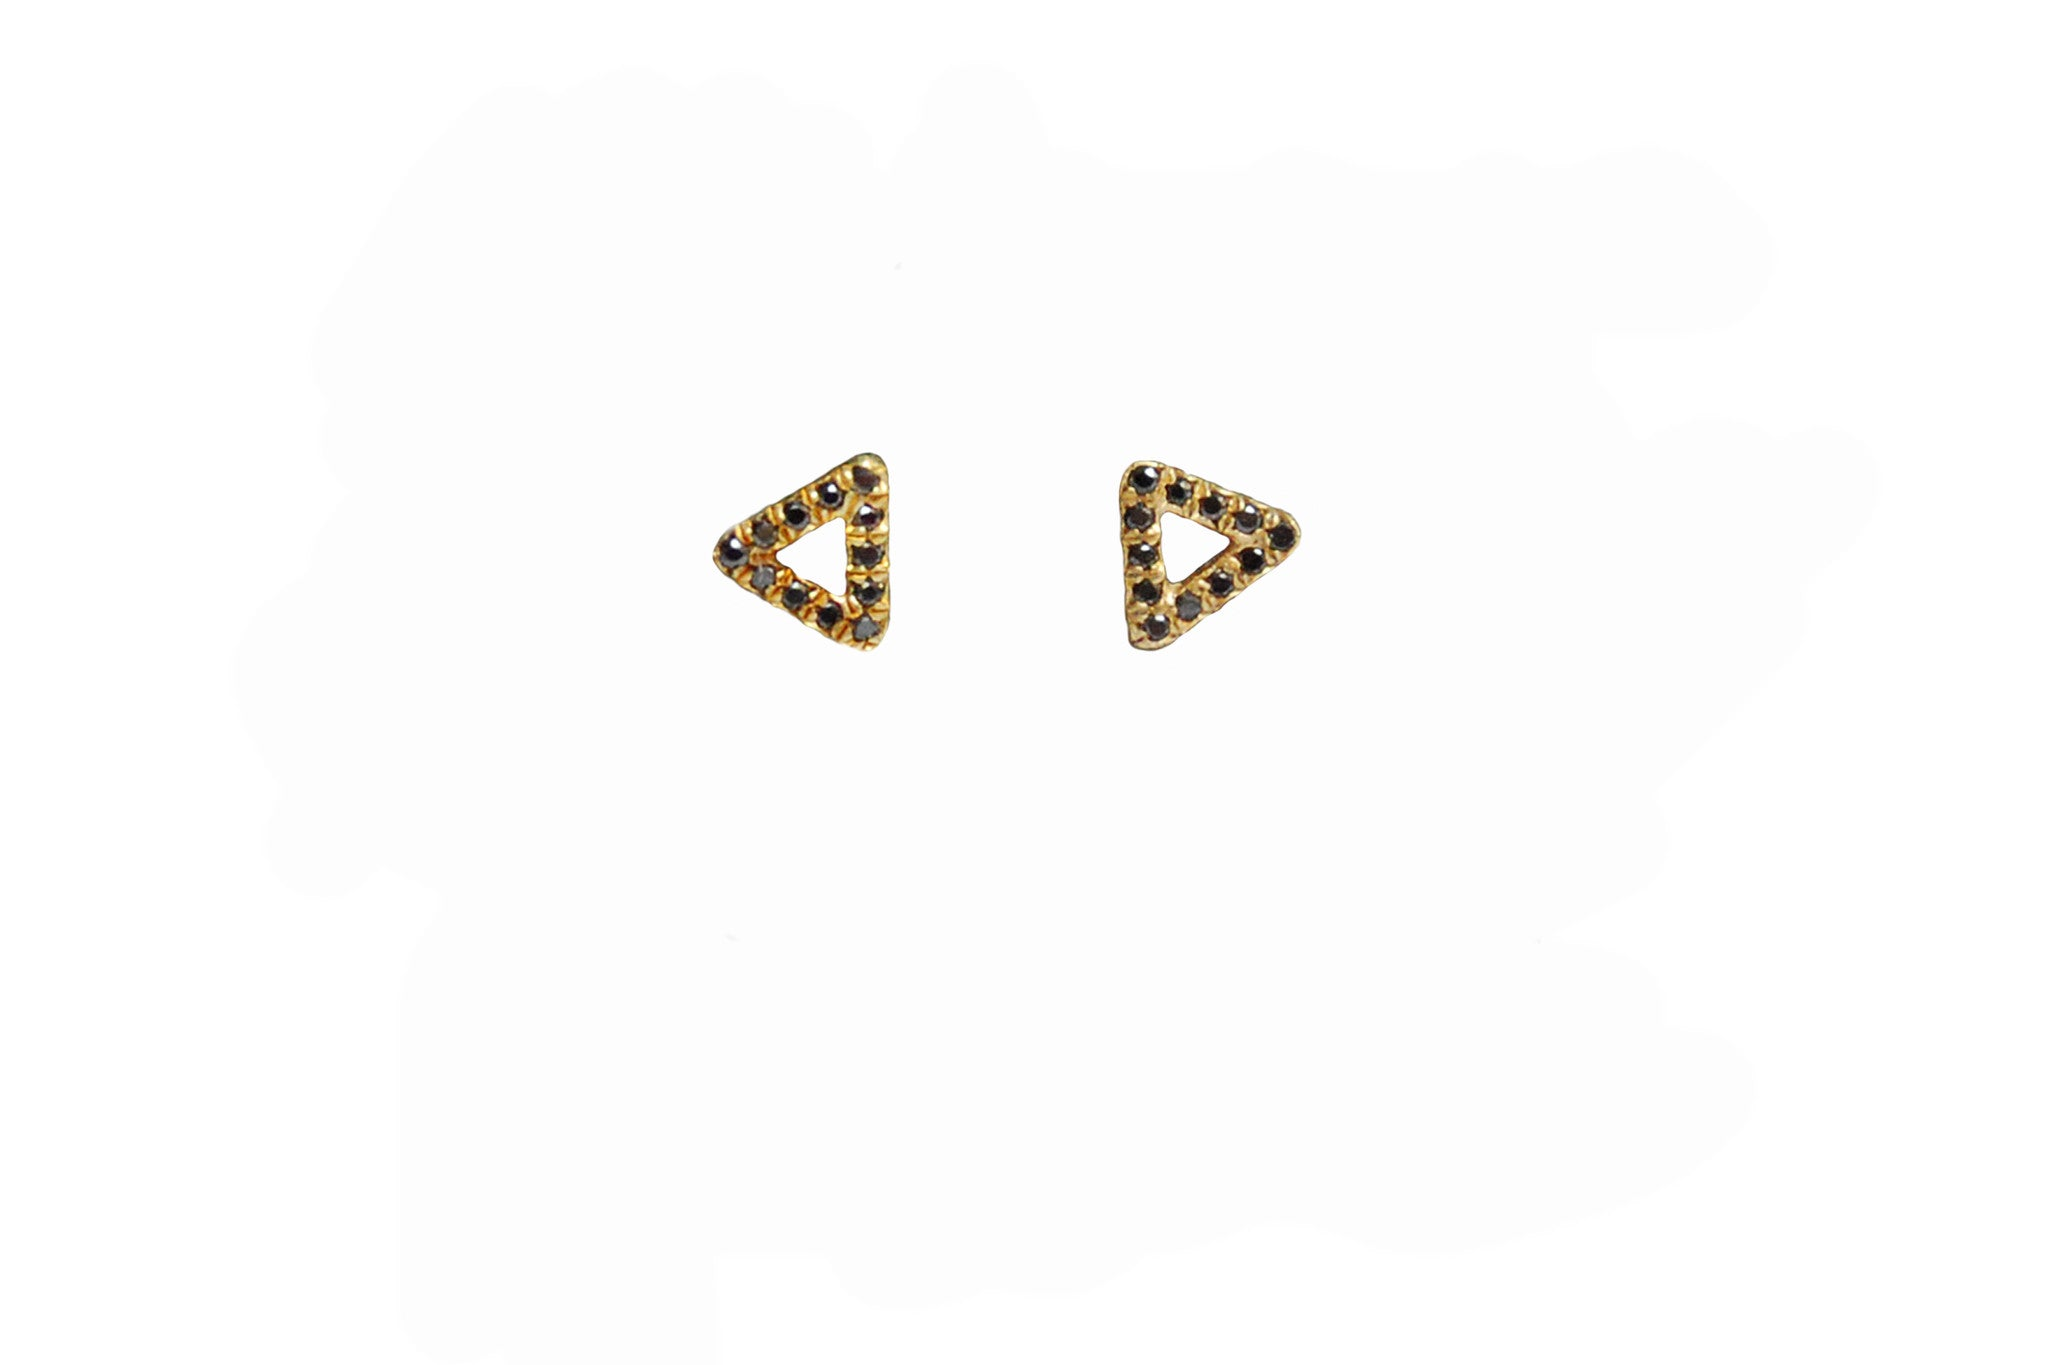 Triangle Stud Earrings Wendy Nichol Fine Jewelry Designer Delicate Petite Simple Micro Pave White or Black Diamonds 14k Gold